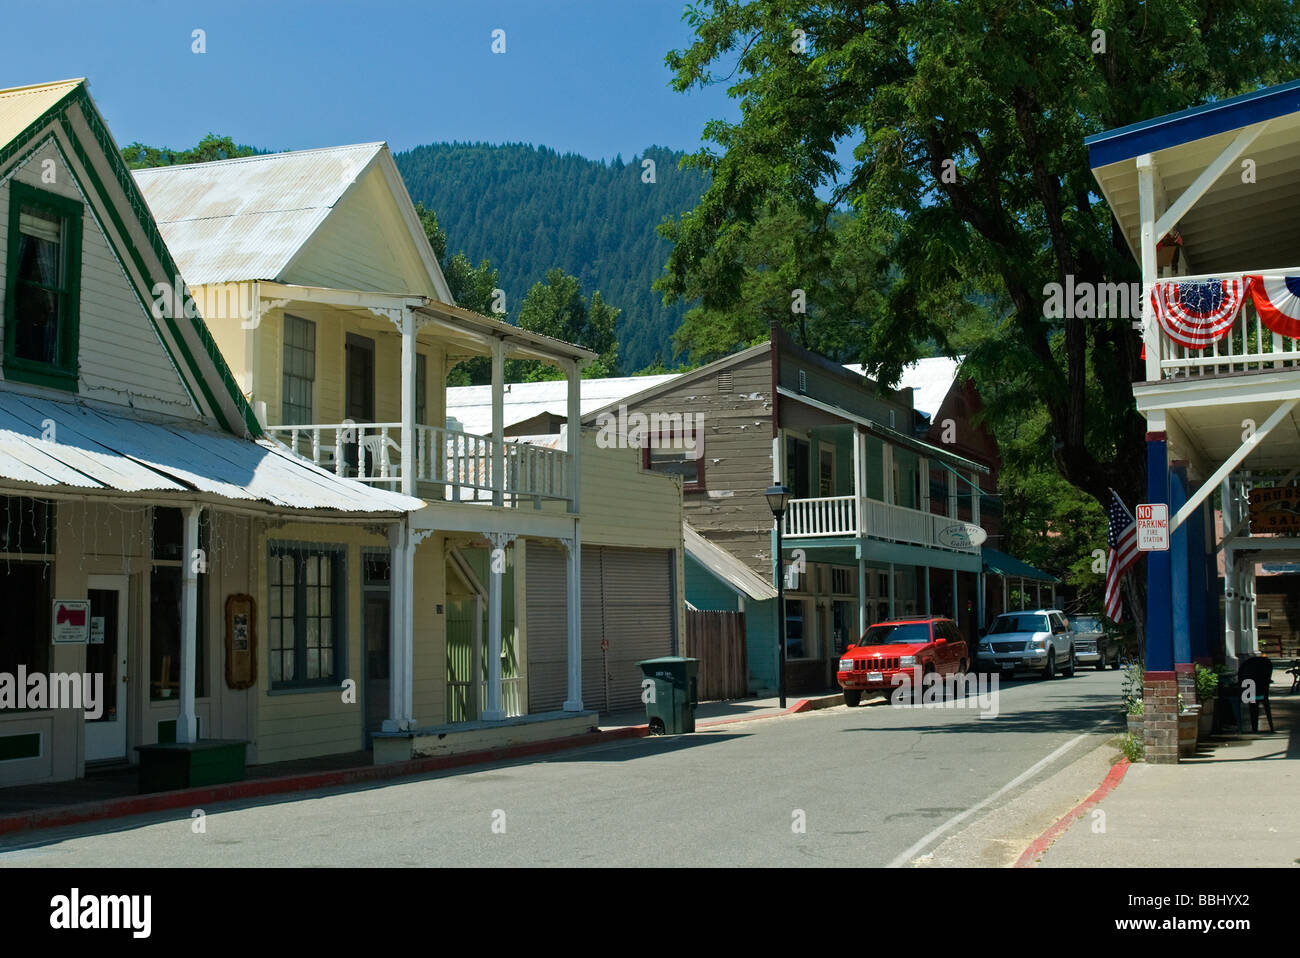 USA California Downieville Main Street mid 19th century architecture gold rush town - Stock Image